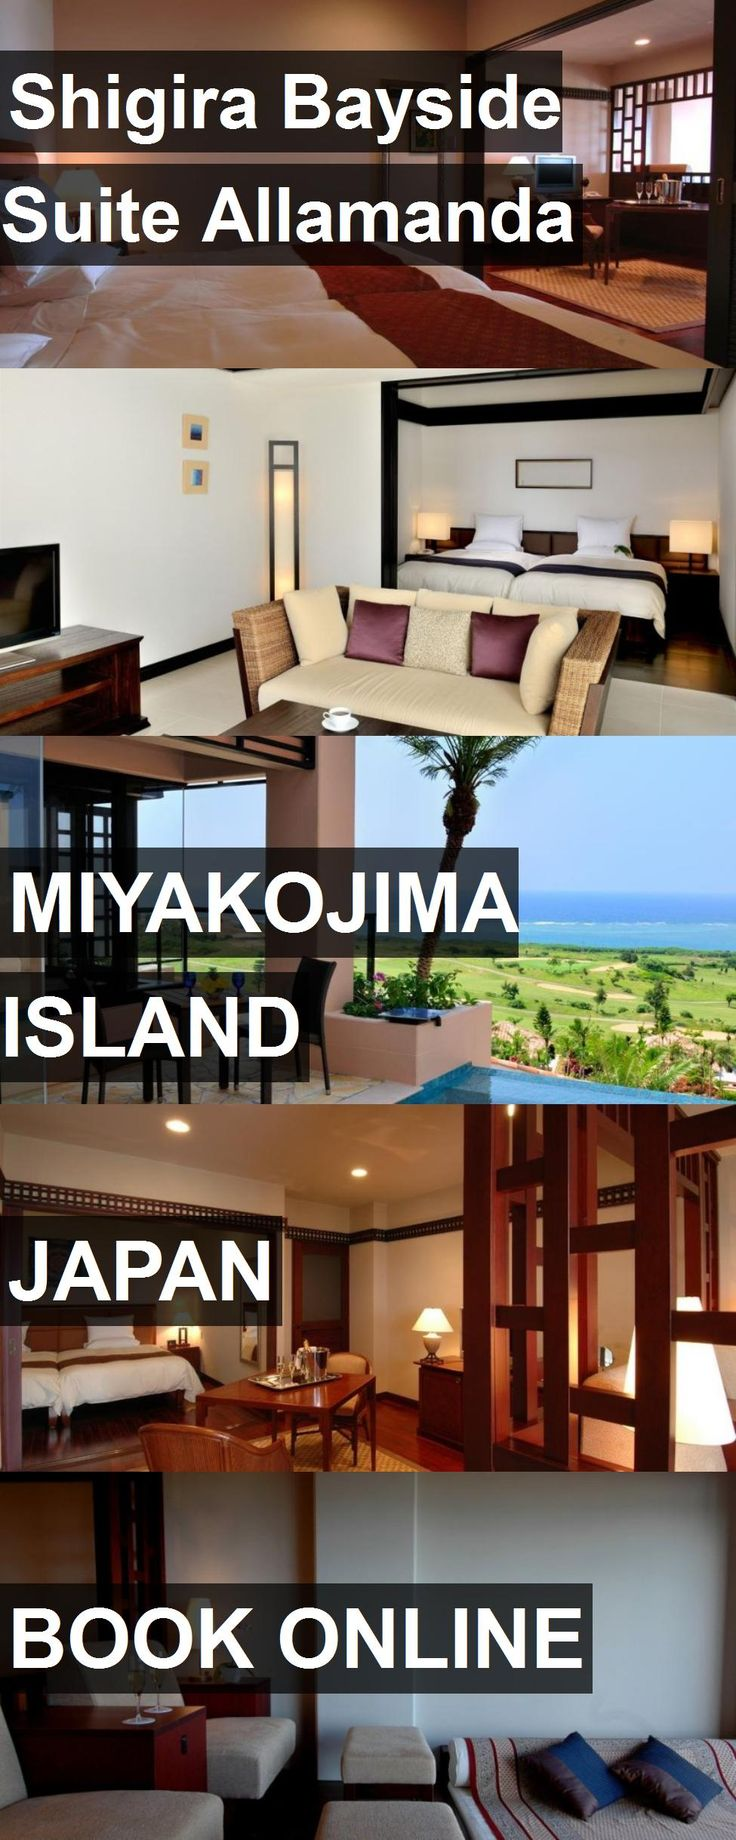 Hotel Shigira Bayside Suite Allamanda in Miyakojima Island, Japan. For more information, photos, reviews and best prices please follow the link. #Japan #MiyakojimaIsland #travel #vacation #hotel